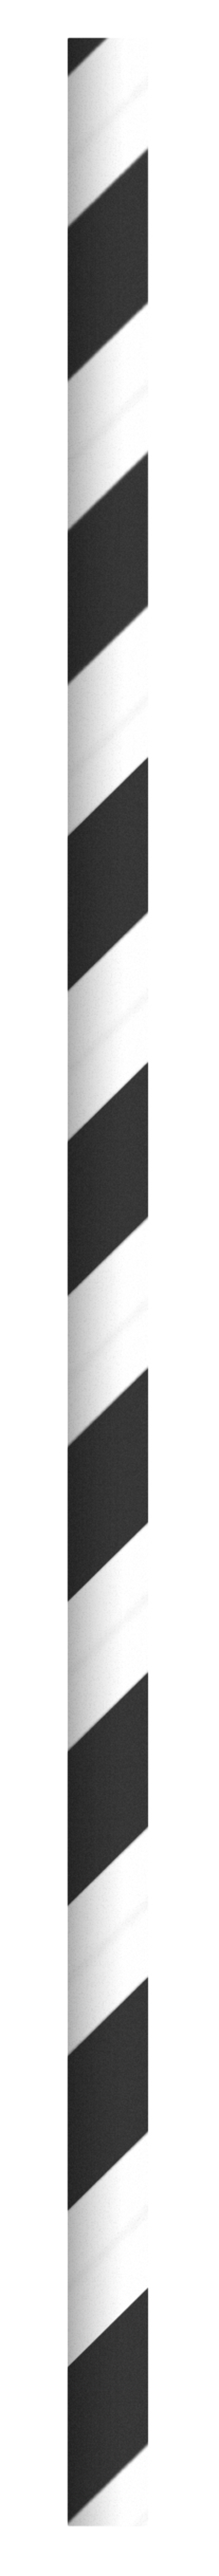 Durable Black & White Striped Cocktail Paper Straws - 5.7  Inches